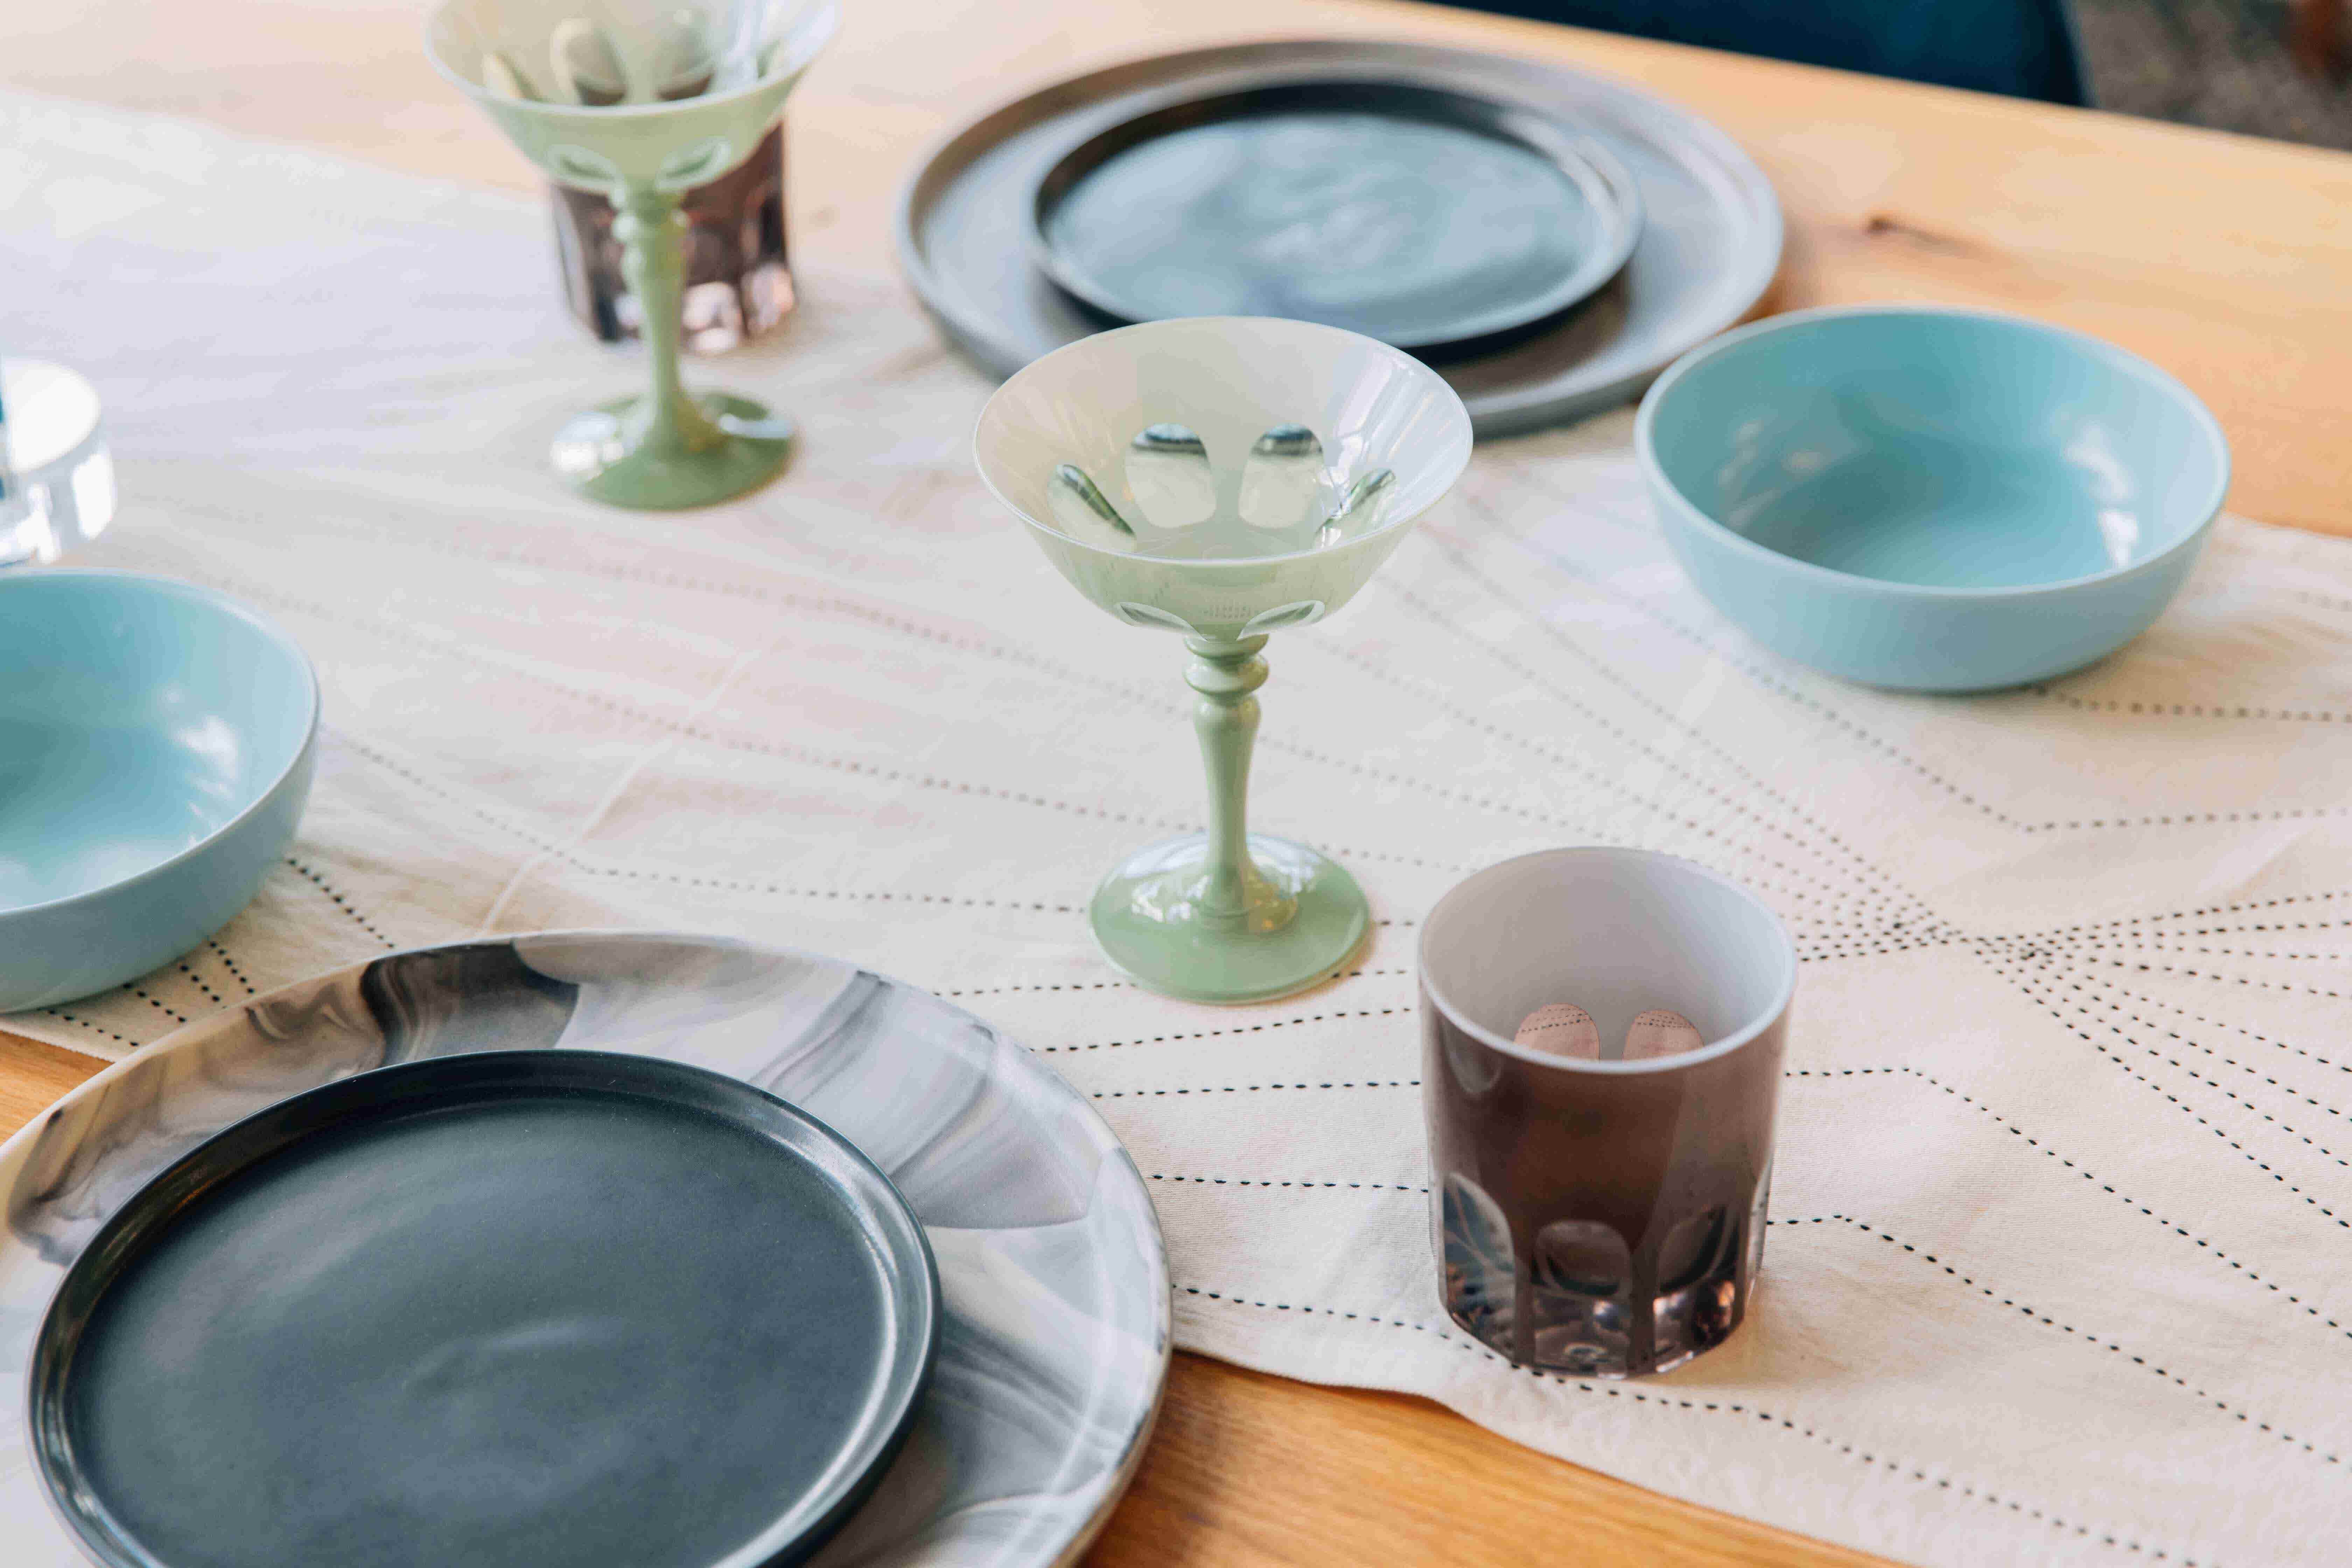 Colorful plates, glasses, and serveware by Favor